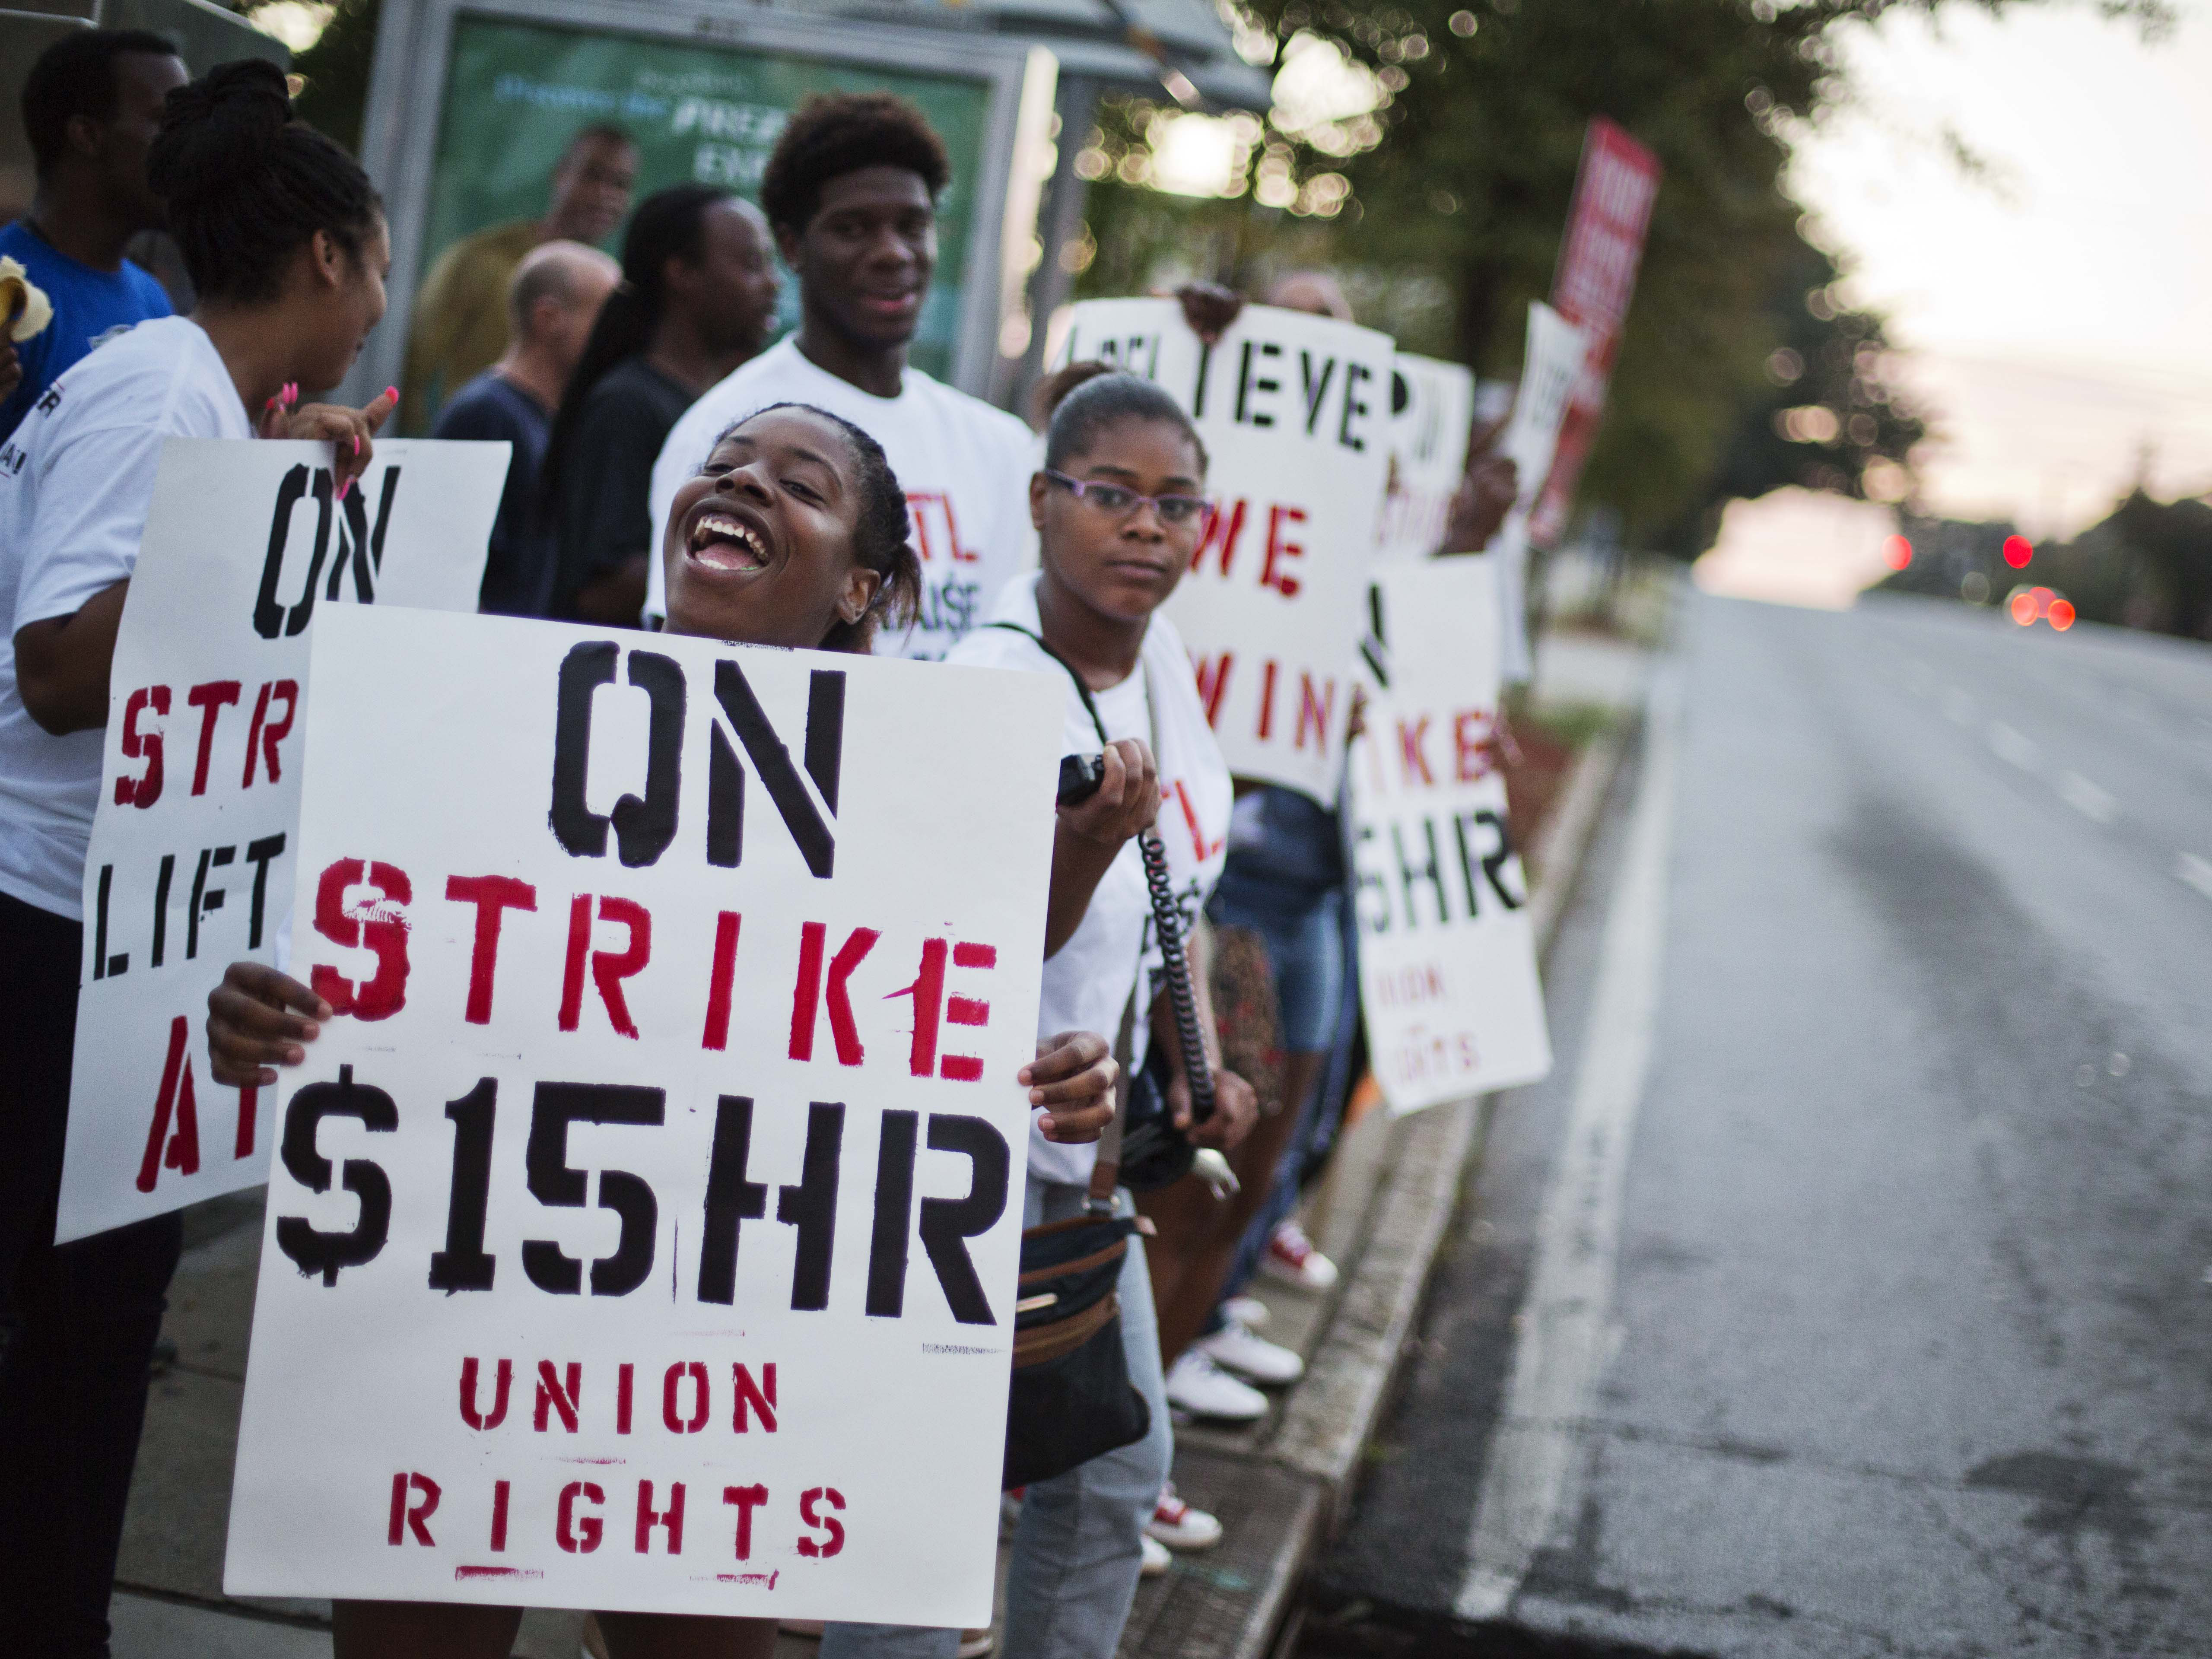 <p>Carmen Burley-Rawls, left, demonstrates outside a Burger King restaurant, Thursday, Sept. 4, 2014, in Atlanta. Calling for higher pay and the right to form a union without retaliation, fast-food chain workers across the country, including Denver, protested Thursday.</p>